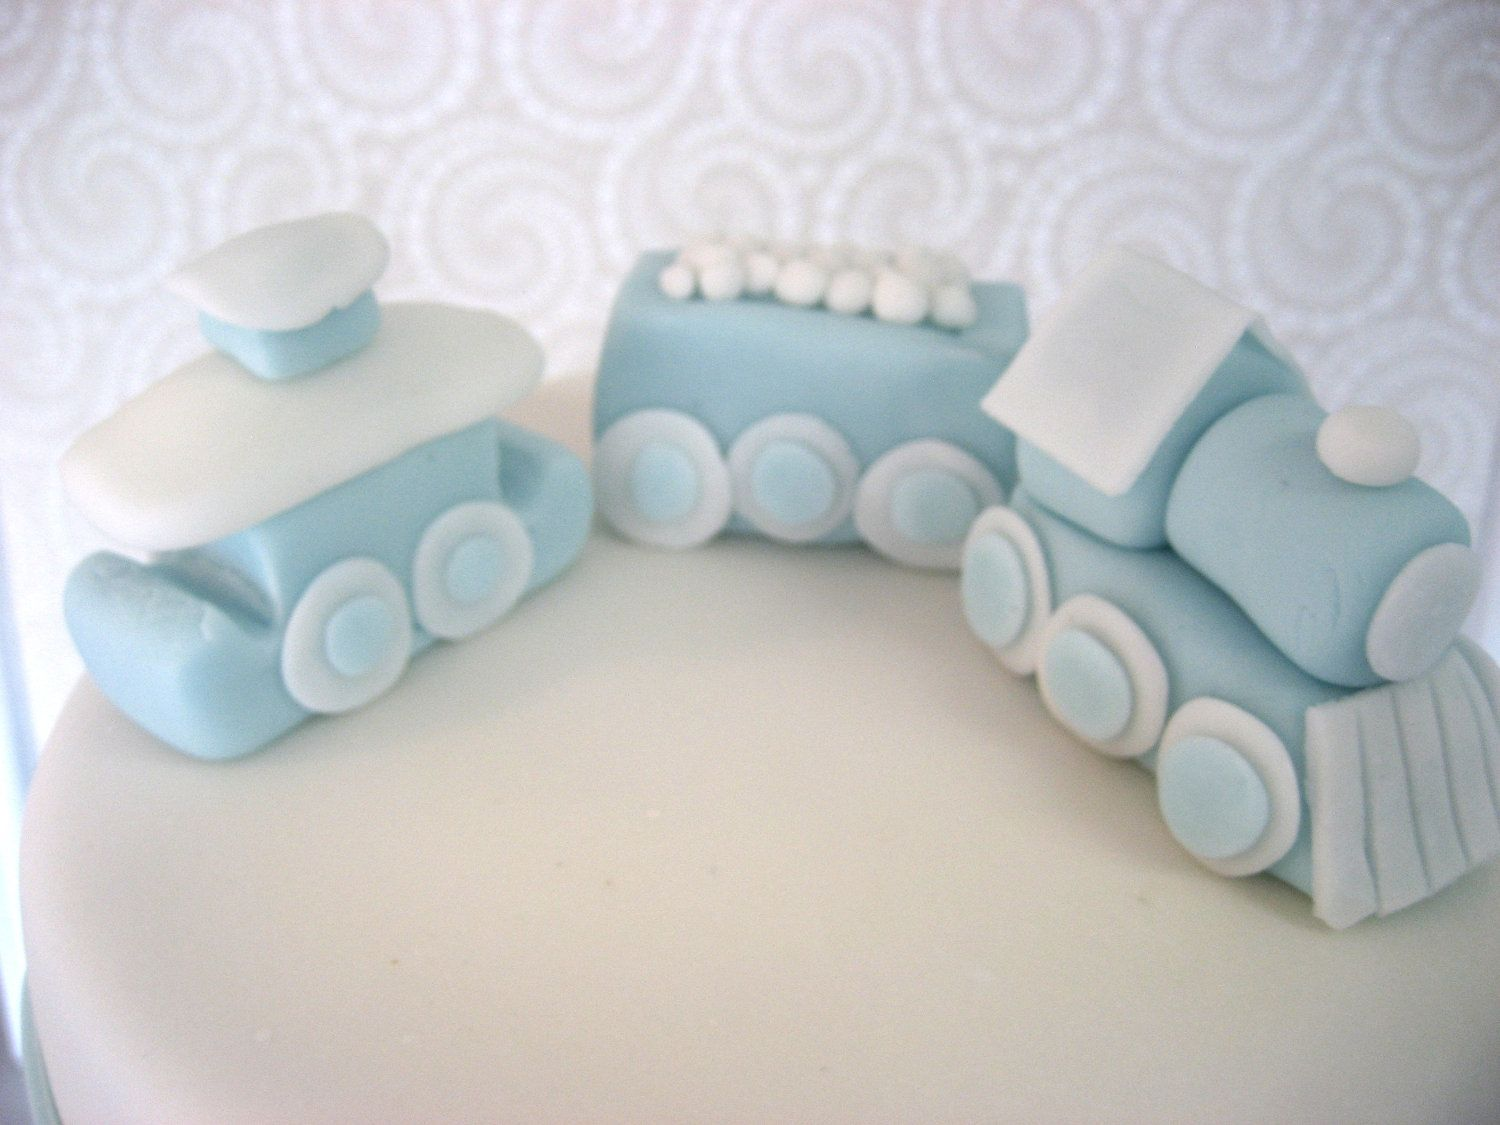 Edible cupcake decorations baby shower - Train Cake Topper Baby Blue And White Edible Fondant Birthday Shower Wedding